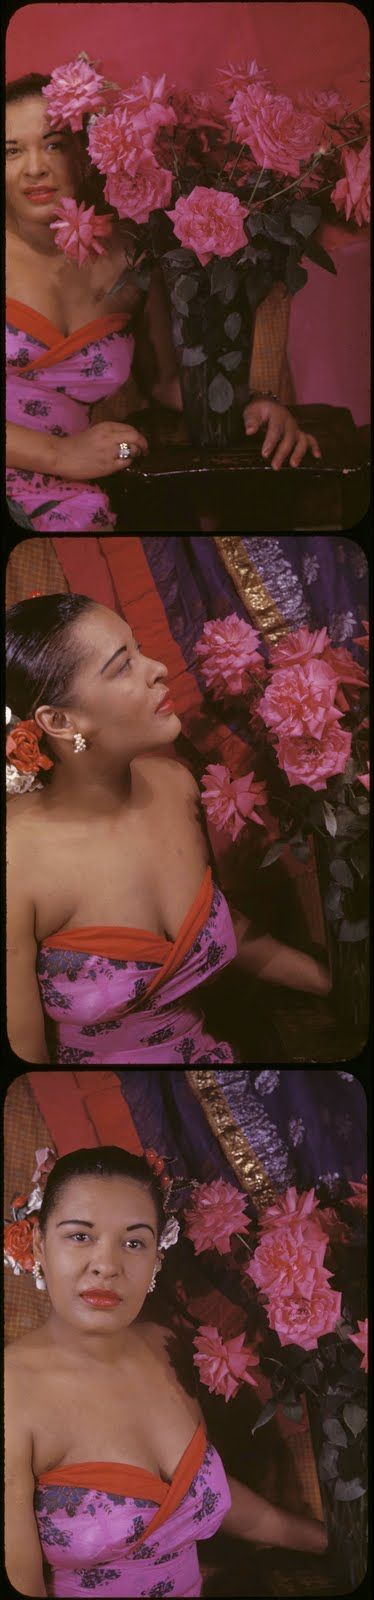 Billie Holiday, 1949 by Carl Van Vechten. [Lady Day swaps gardenias for roses]